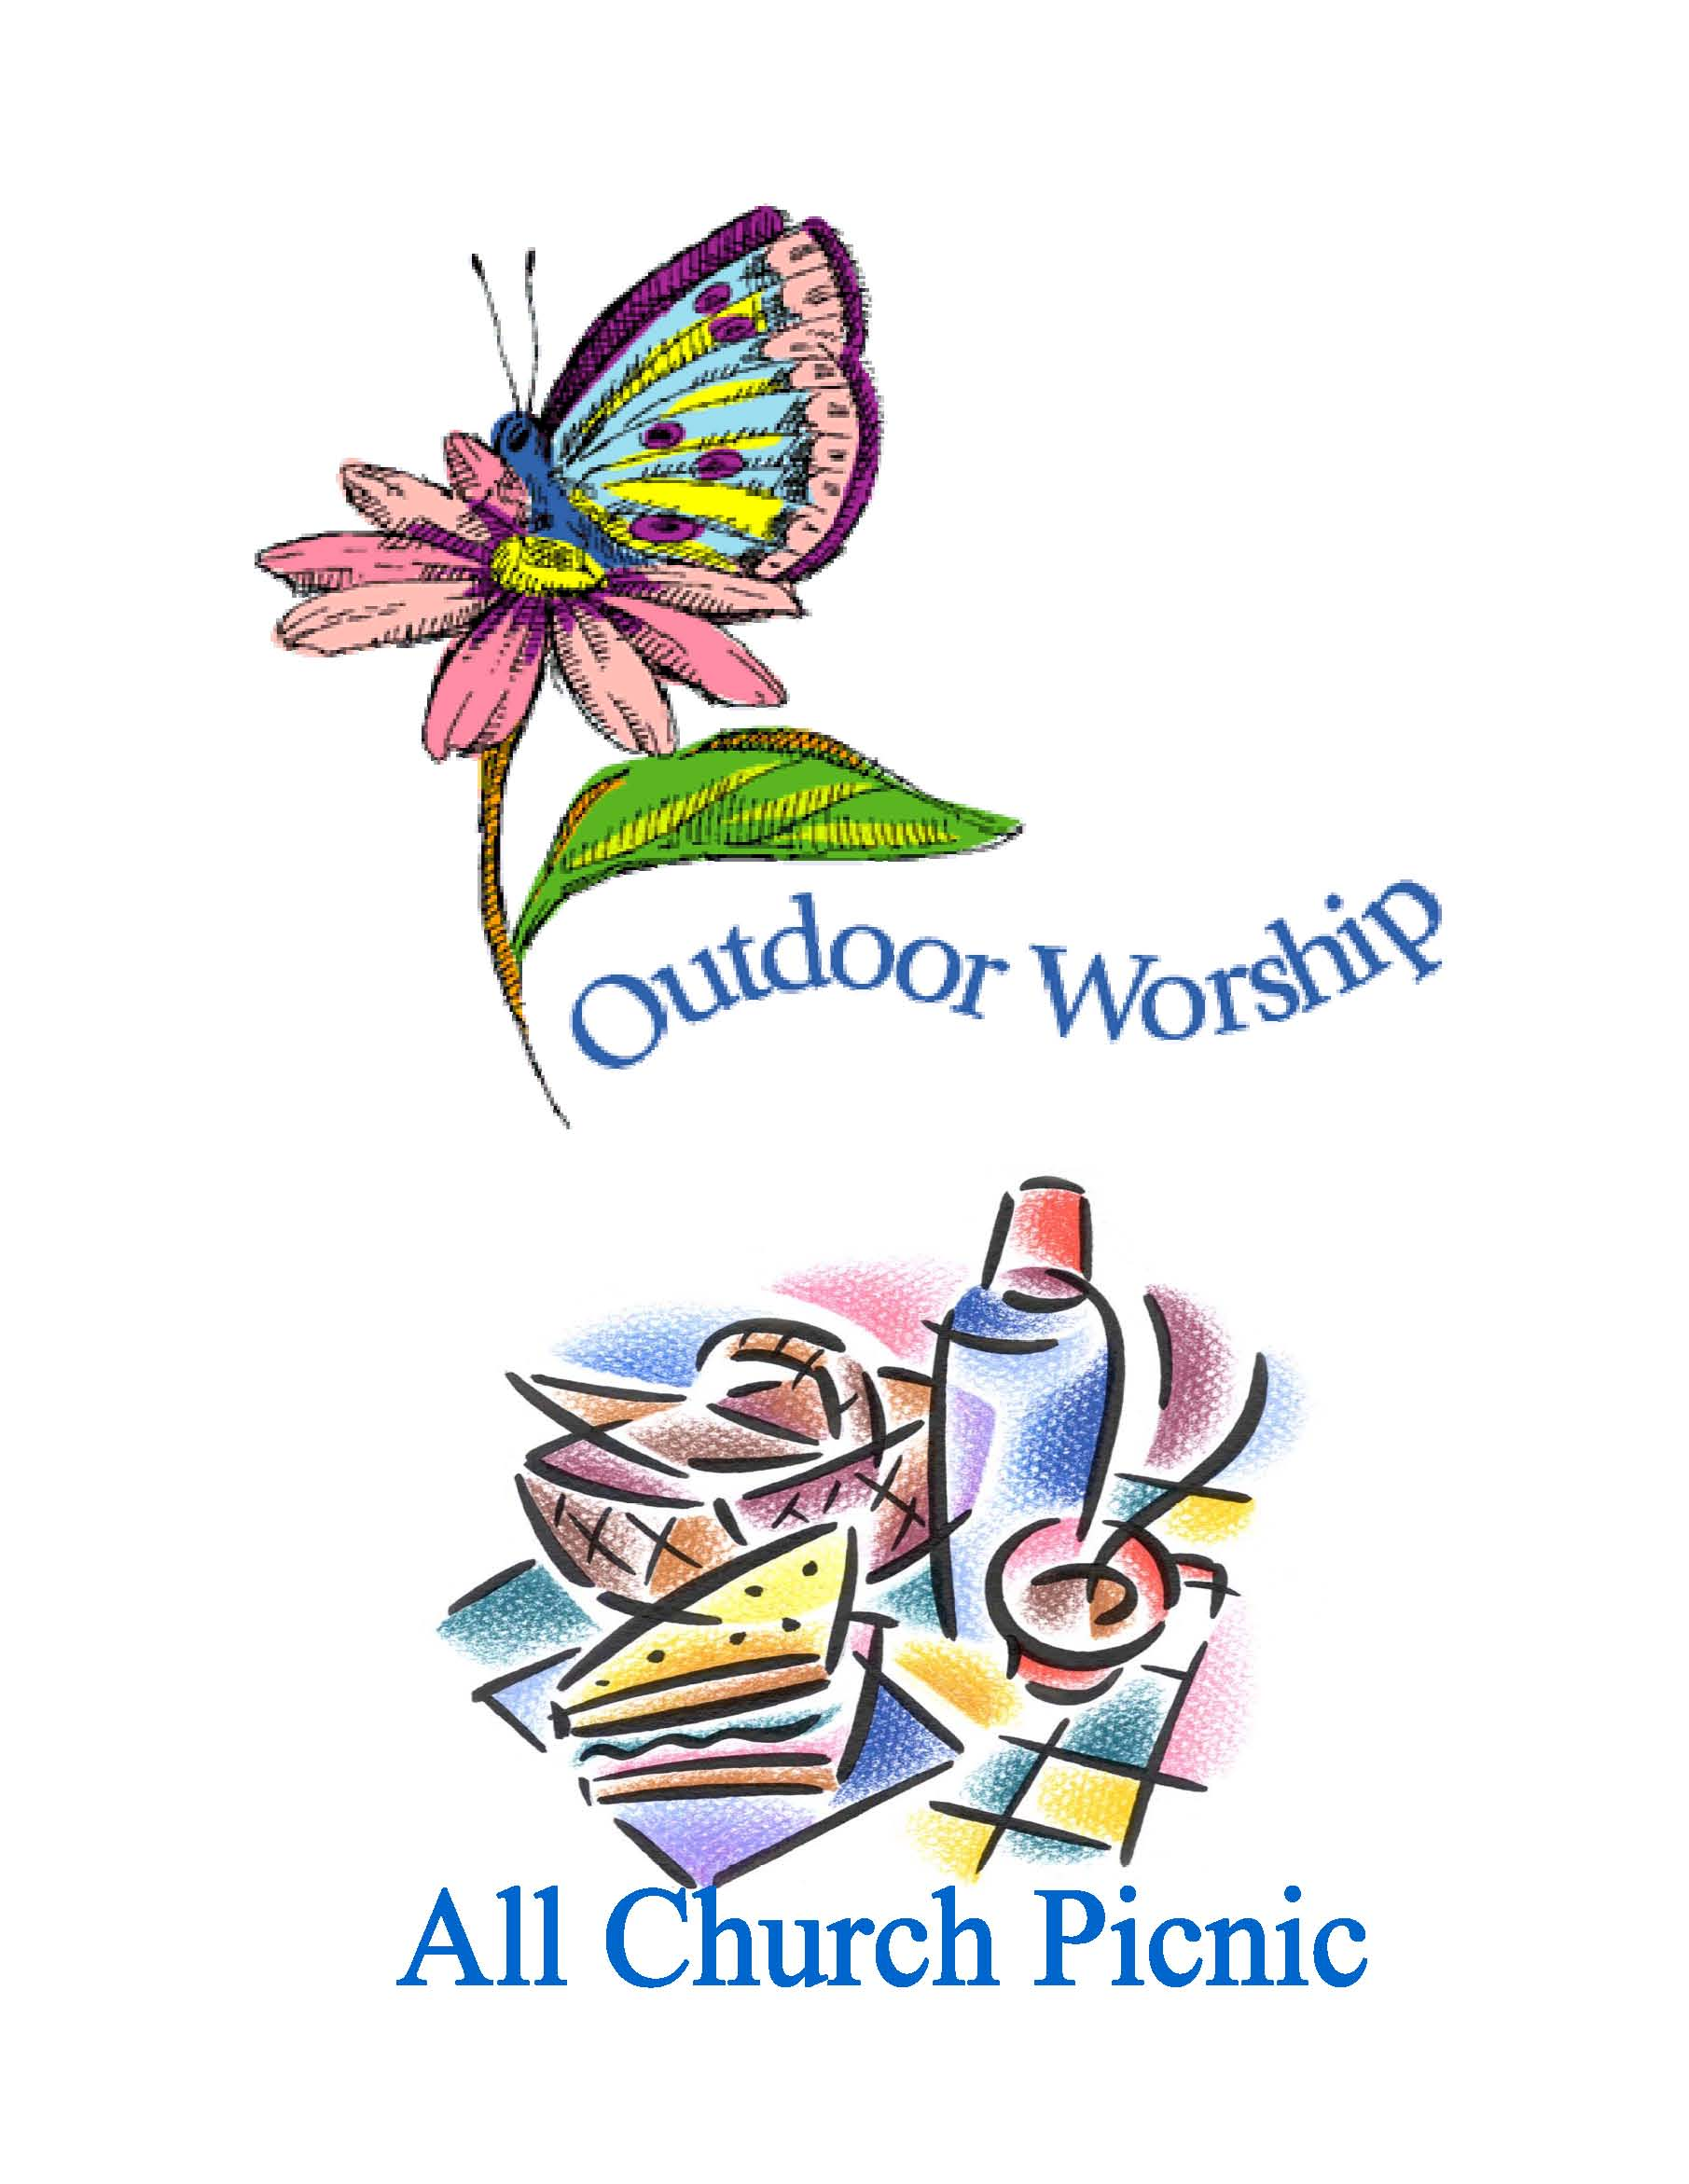 Outdoor clipart church service Outdoor Church Outdoor Clipart Service